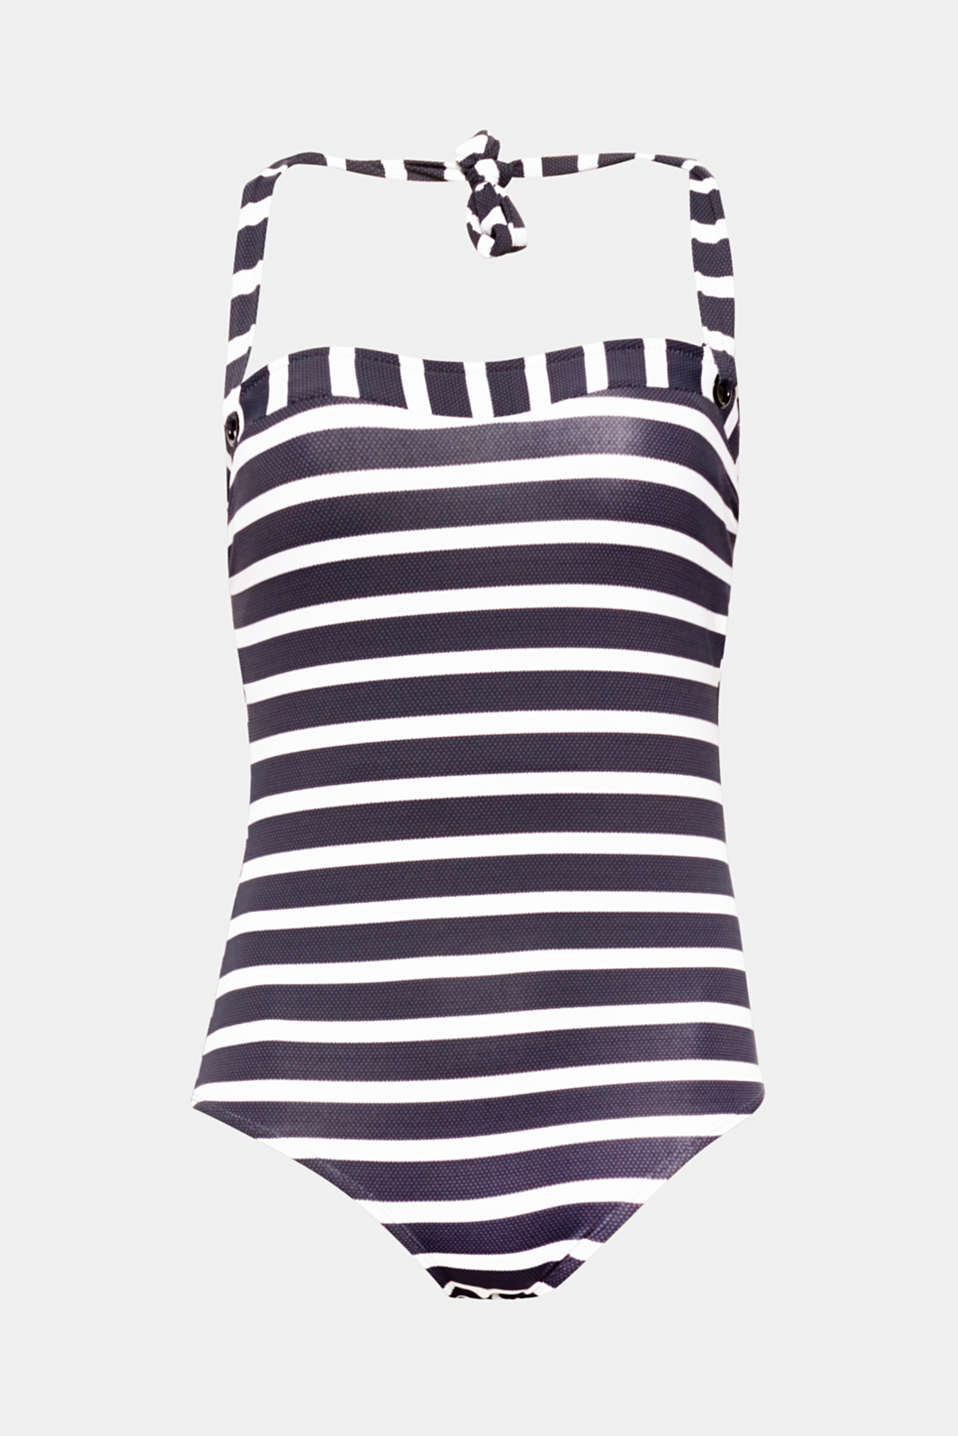 VALENCIA collection - sporty stripes and decorative eyelets give this bandeau swimsuit with halterneck ties its stylish nautical look!